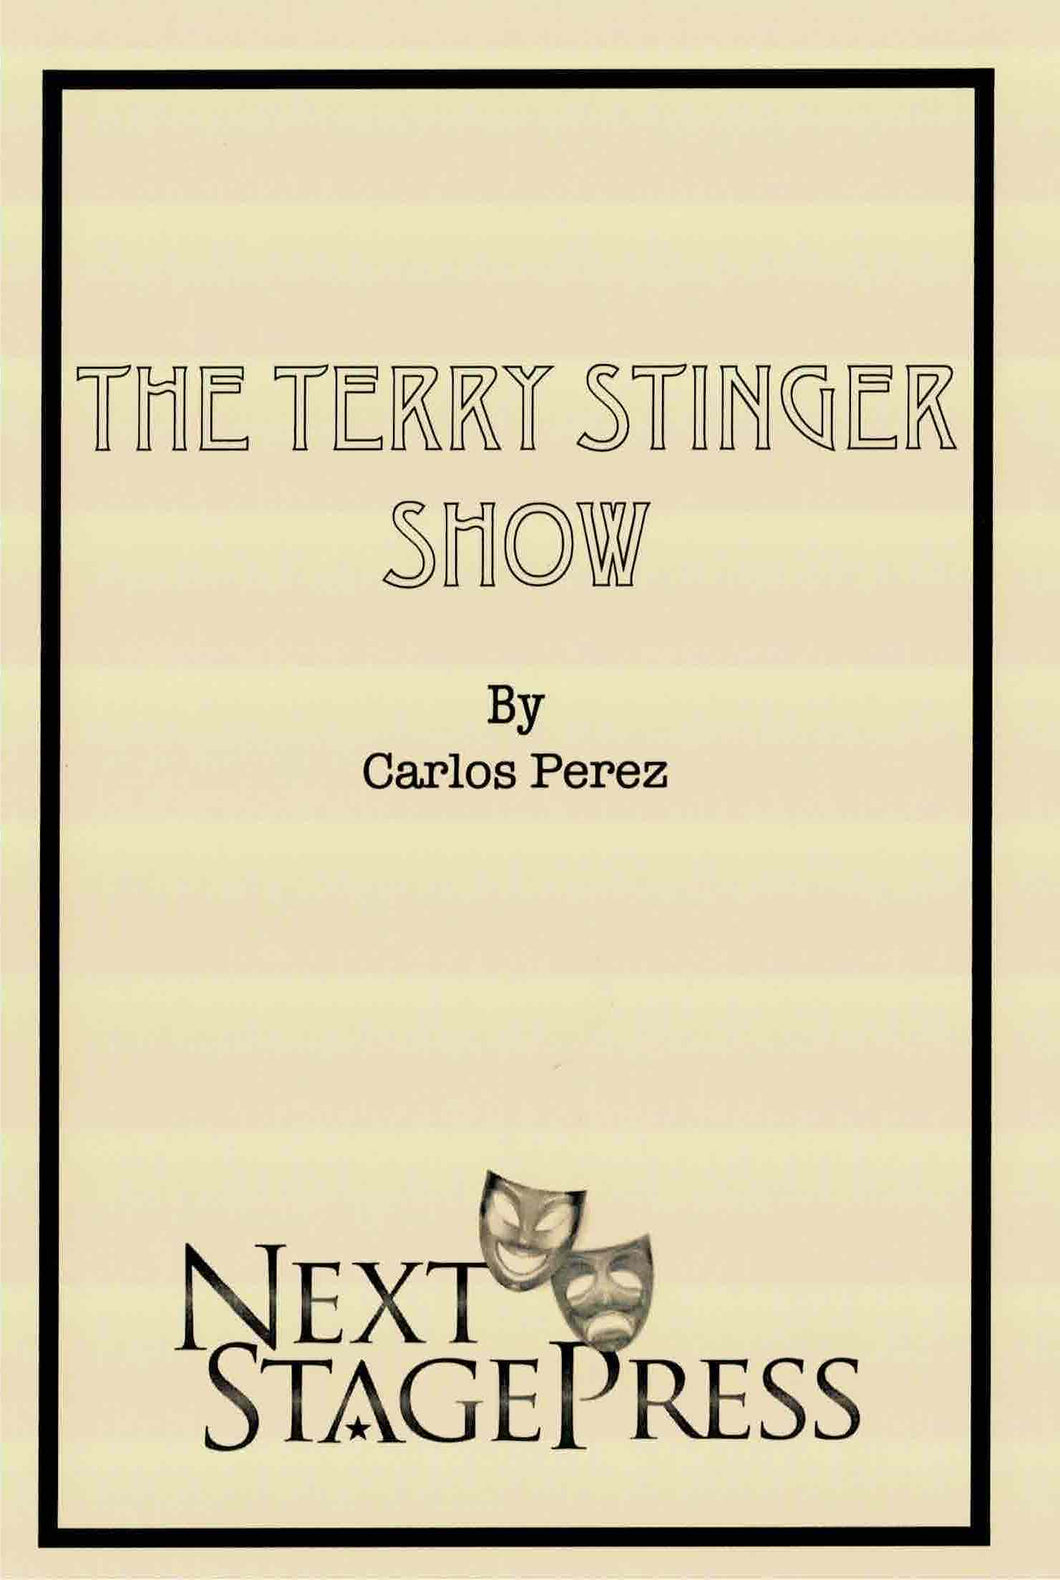 The Terry Stinger Show